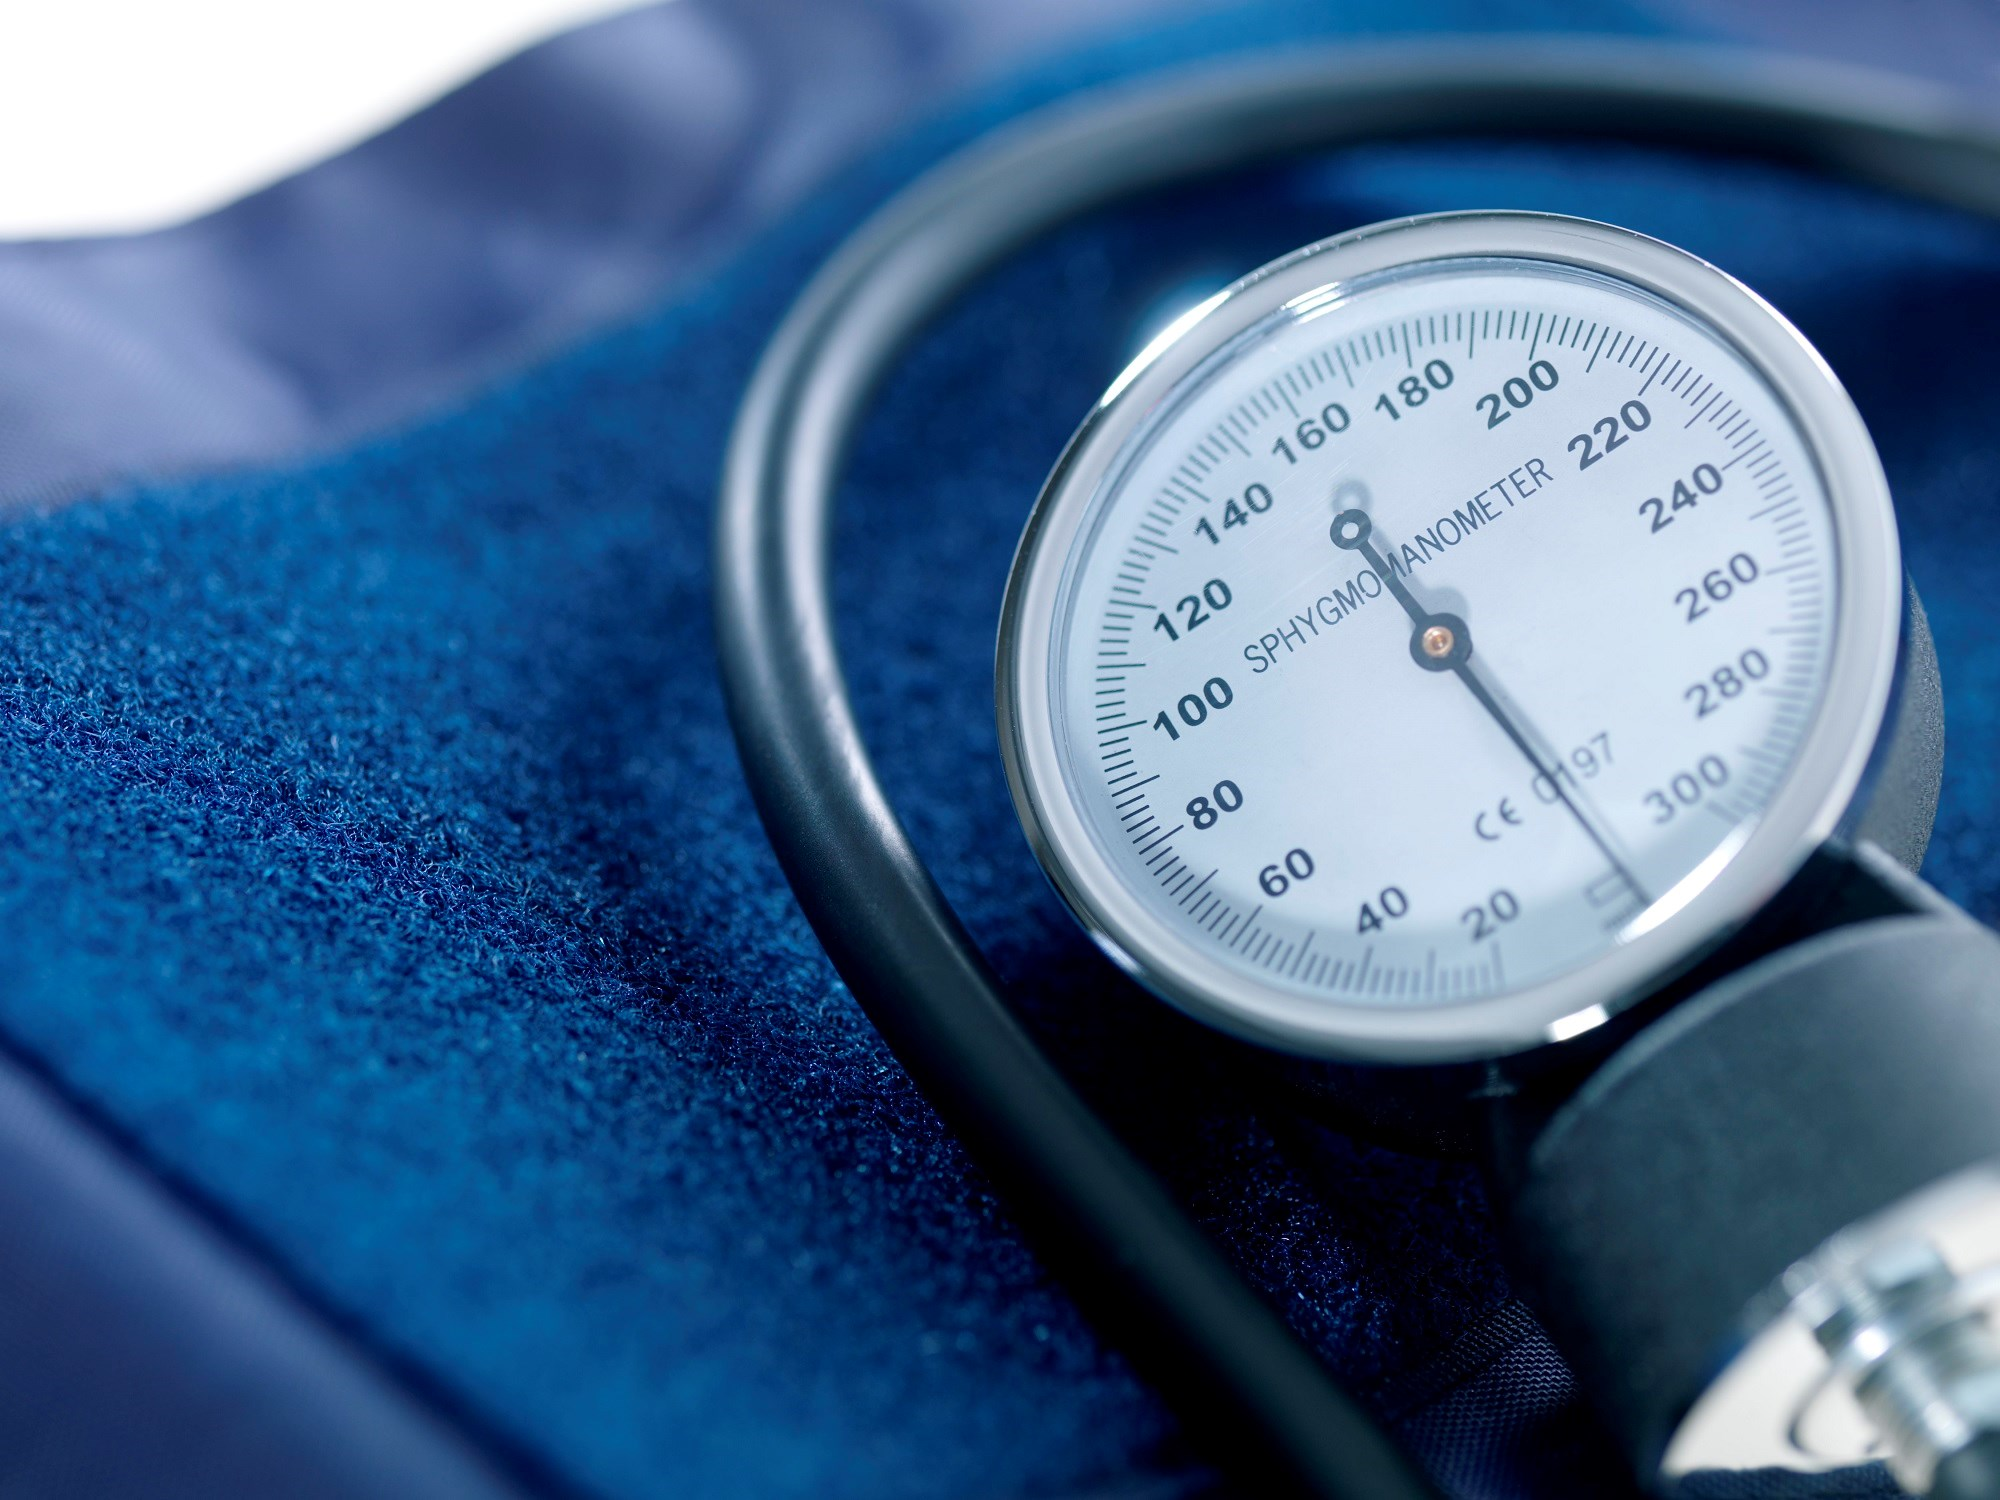 New BP Treatment Cutoffs May Not Yield Survival Benefit